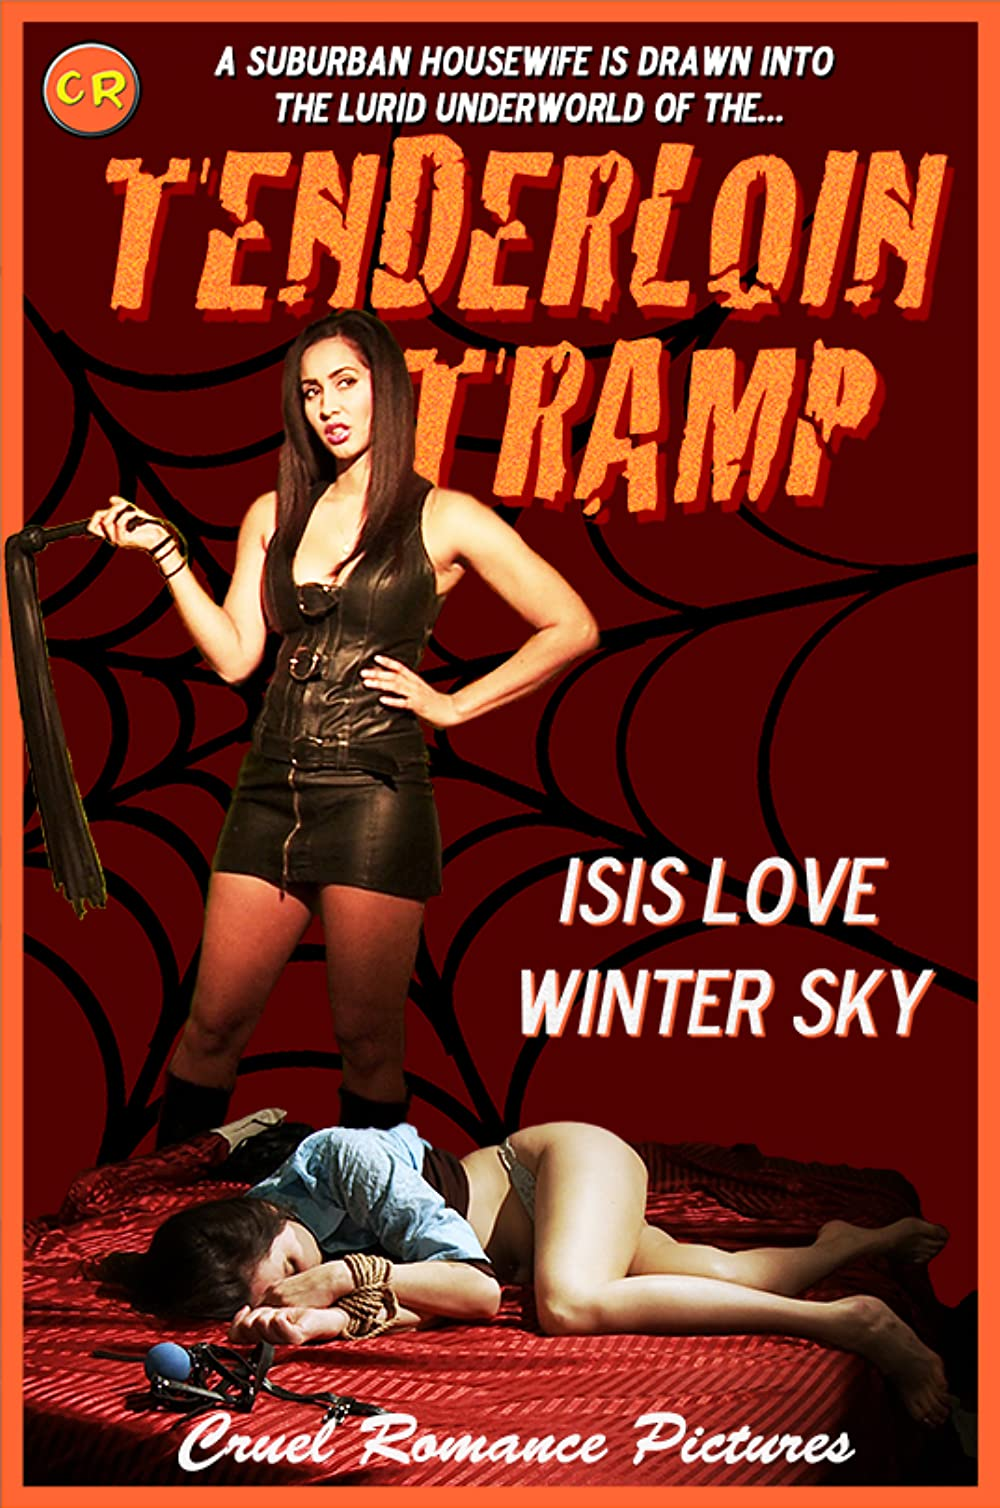 Isis love